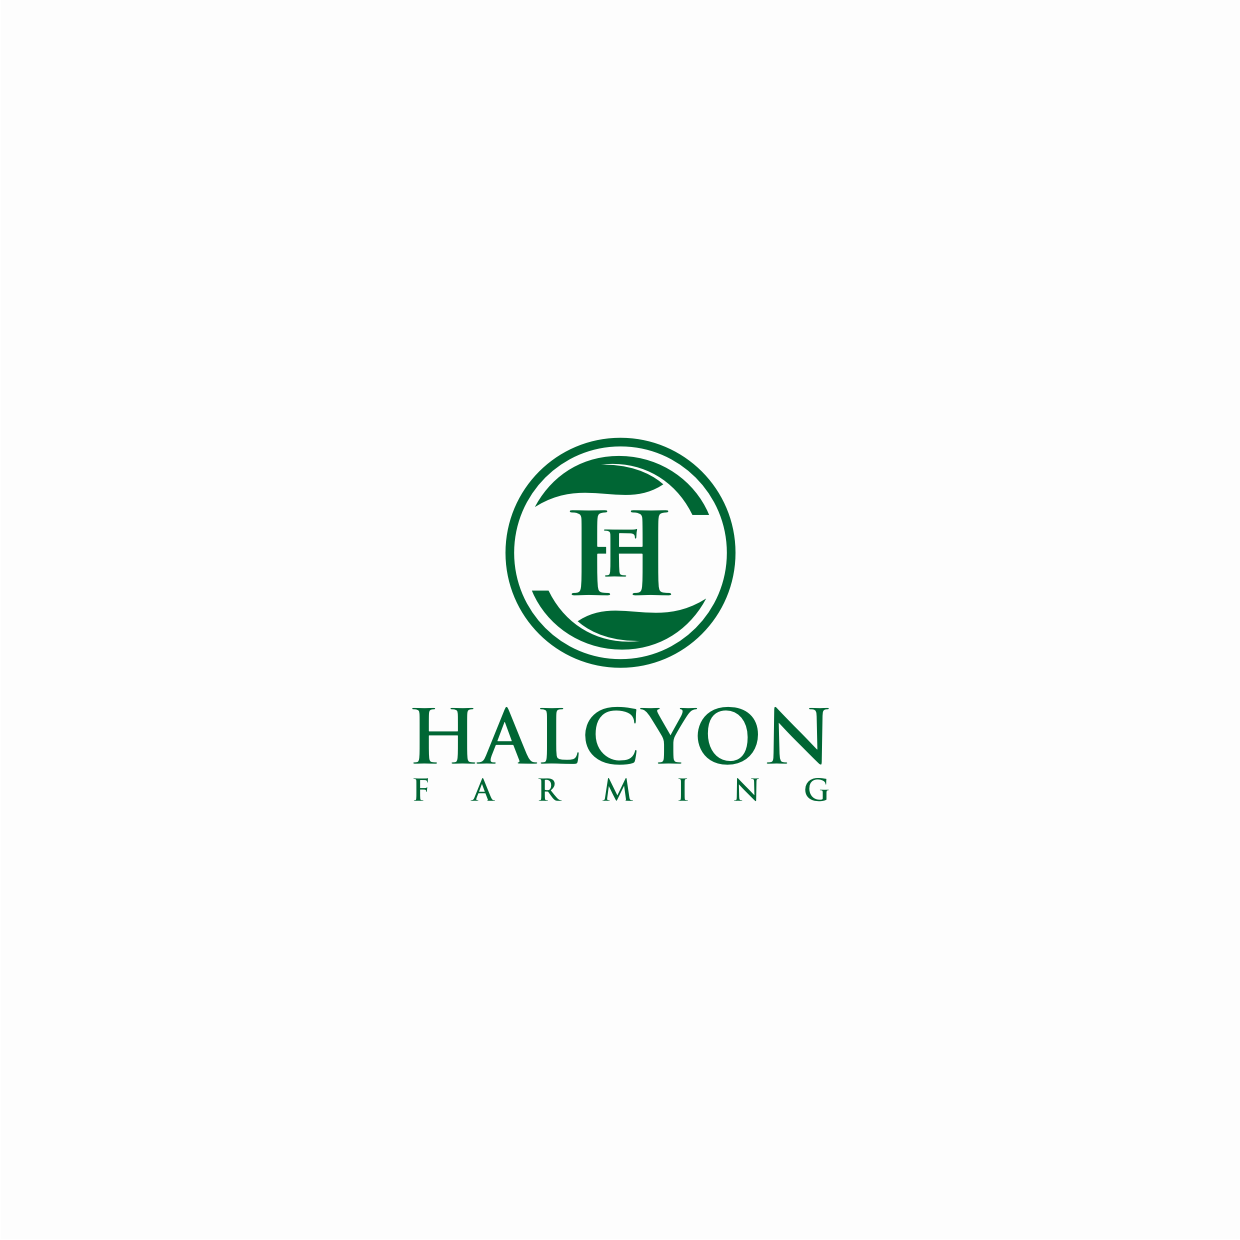 Logo Design by Surya Juna saputra - Entry No. 16 in the Logo Design Contest Creative Logo Design for Halcyon Farming.